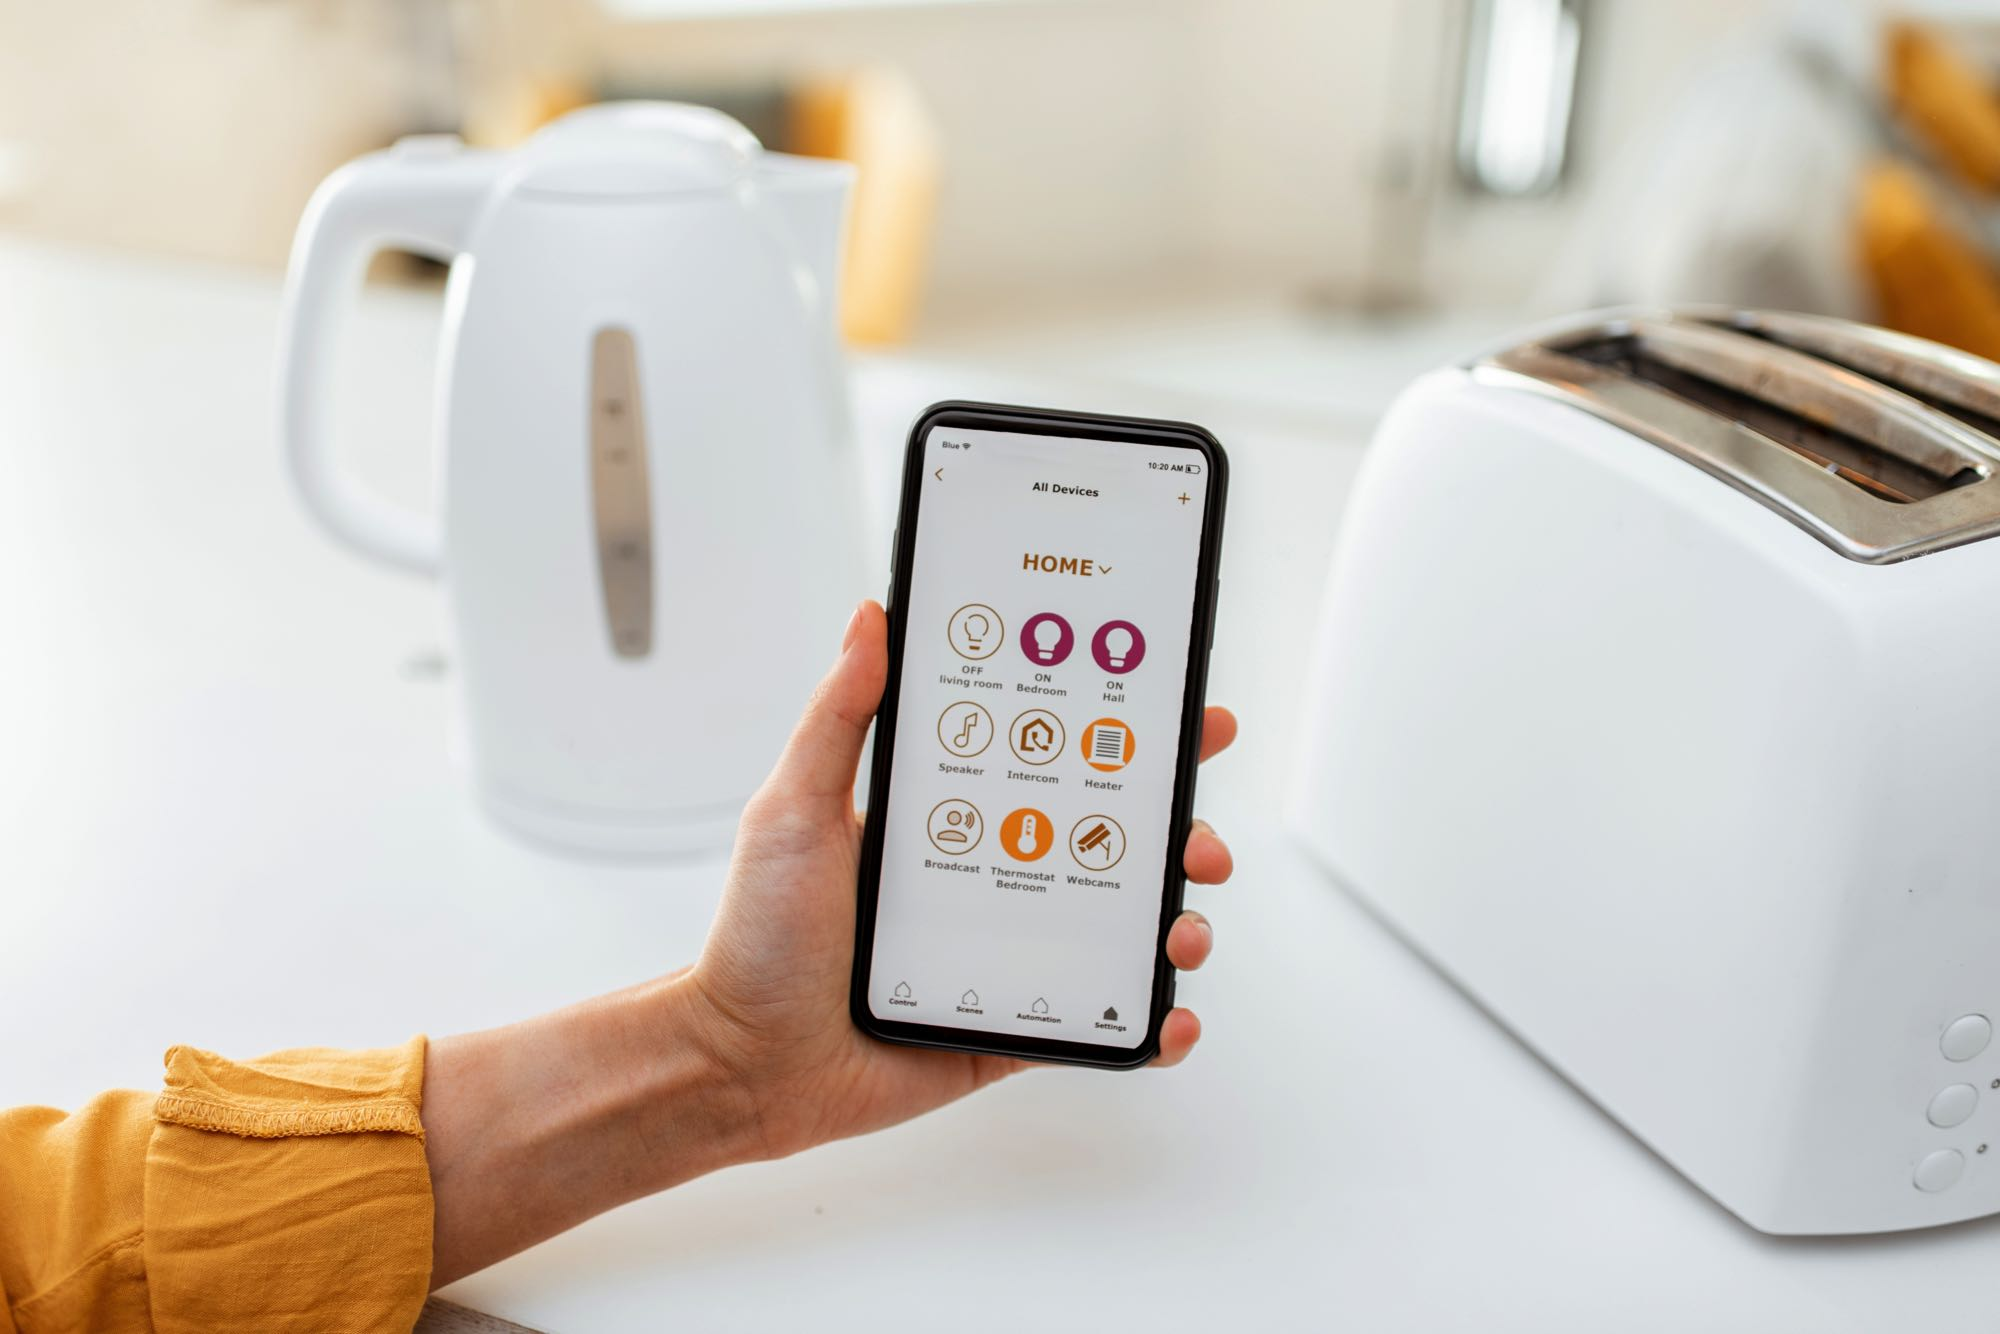 controlling-smart-kitchen-appliance-with-mobile-ap-KMFVNFH